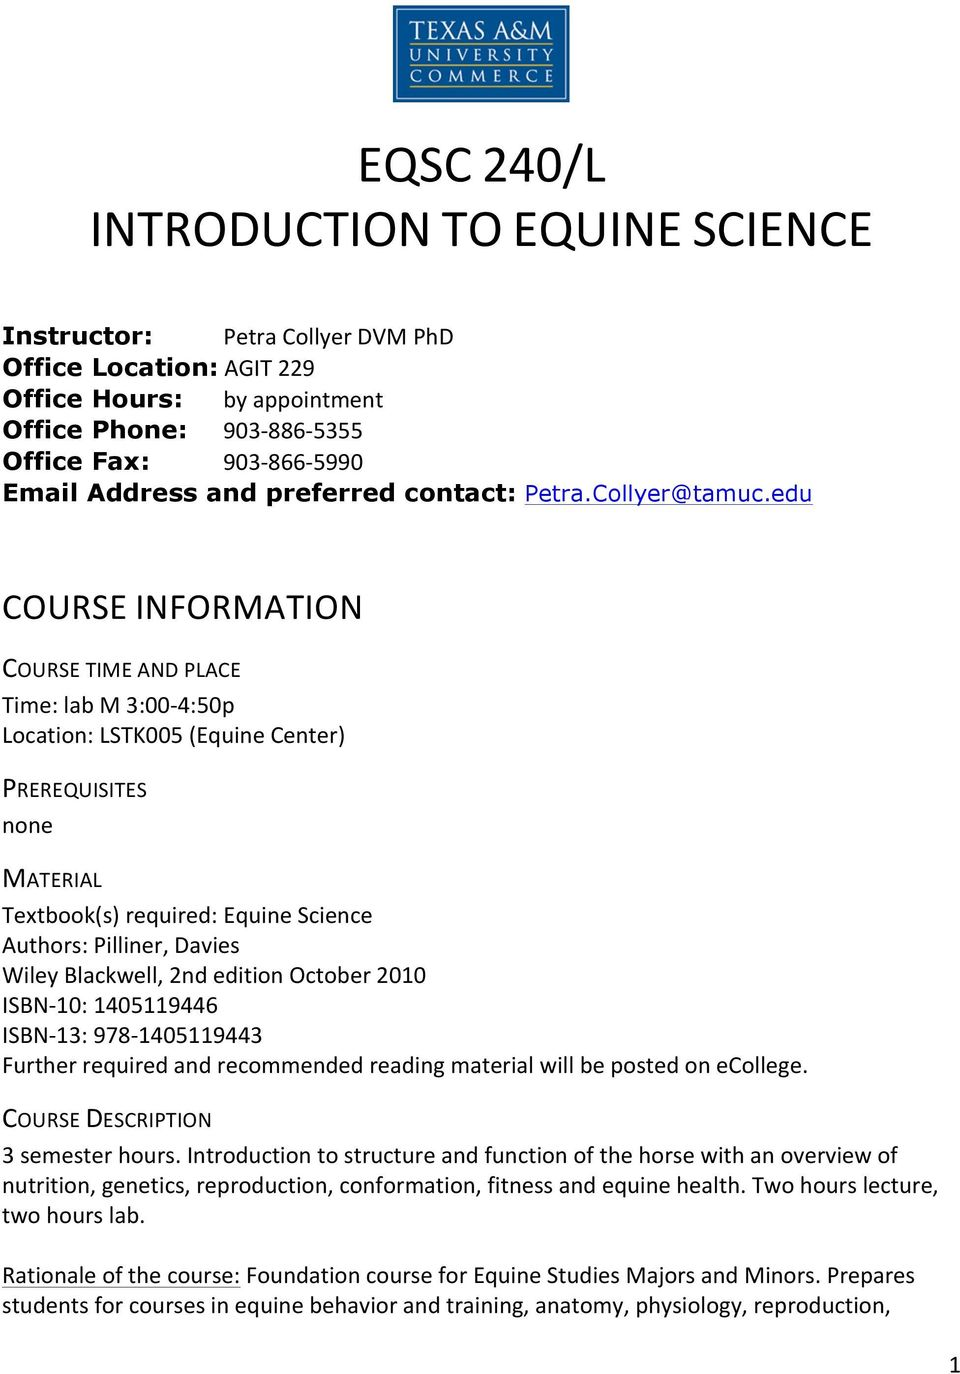 edu COURSE INFORMATION COURSE TIME AND PLACE Time: lab M 3:00-4:50p Location: LSTK005 (Equine Center) PREREQUISITES none MATERIAL Textbook(s) required: Equine Science Authors: Pilliner, Davies Wiley